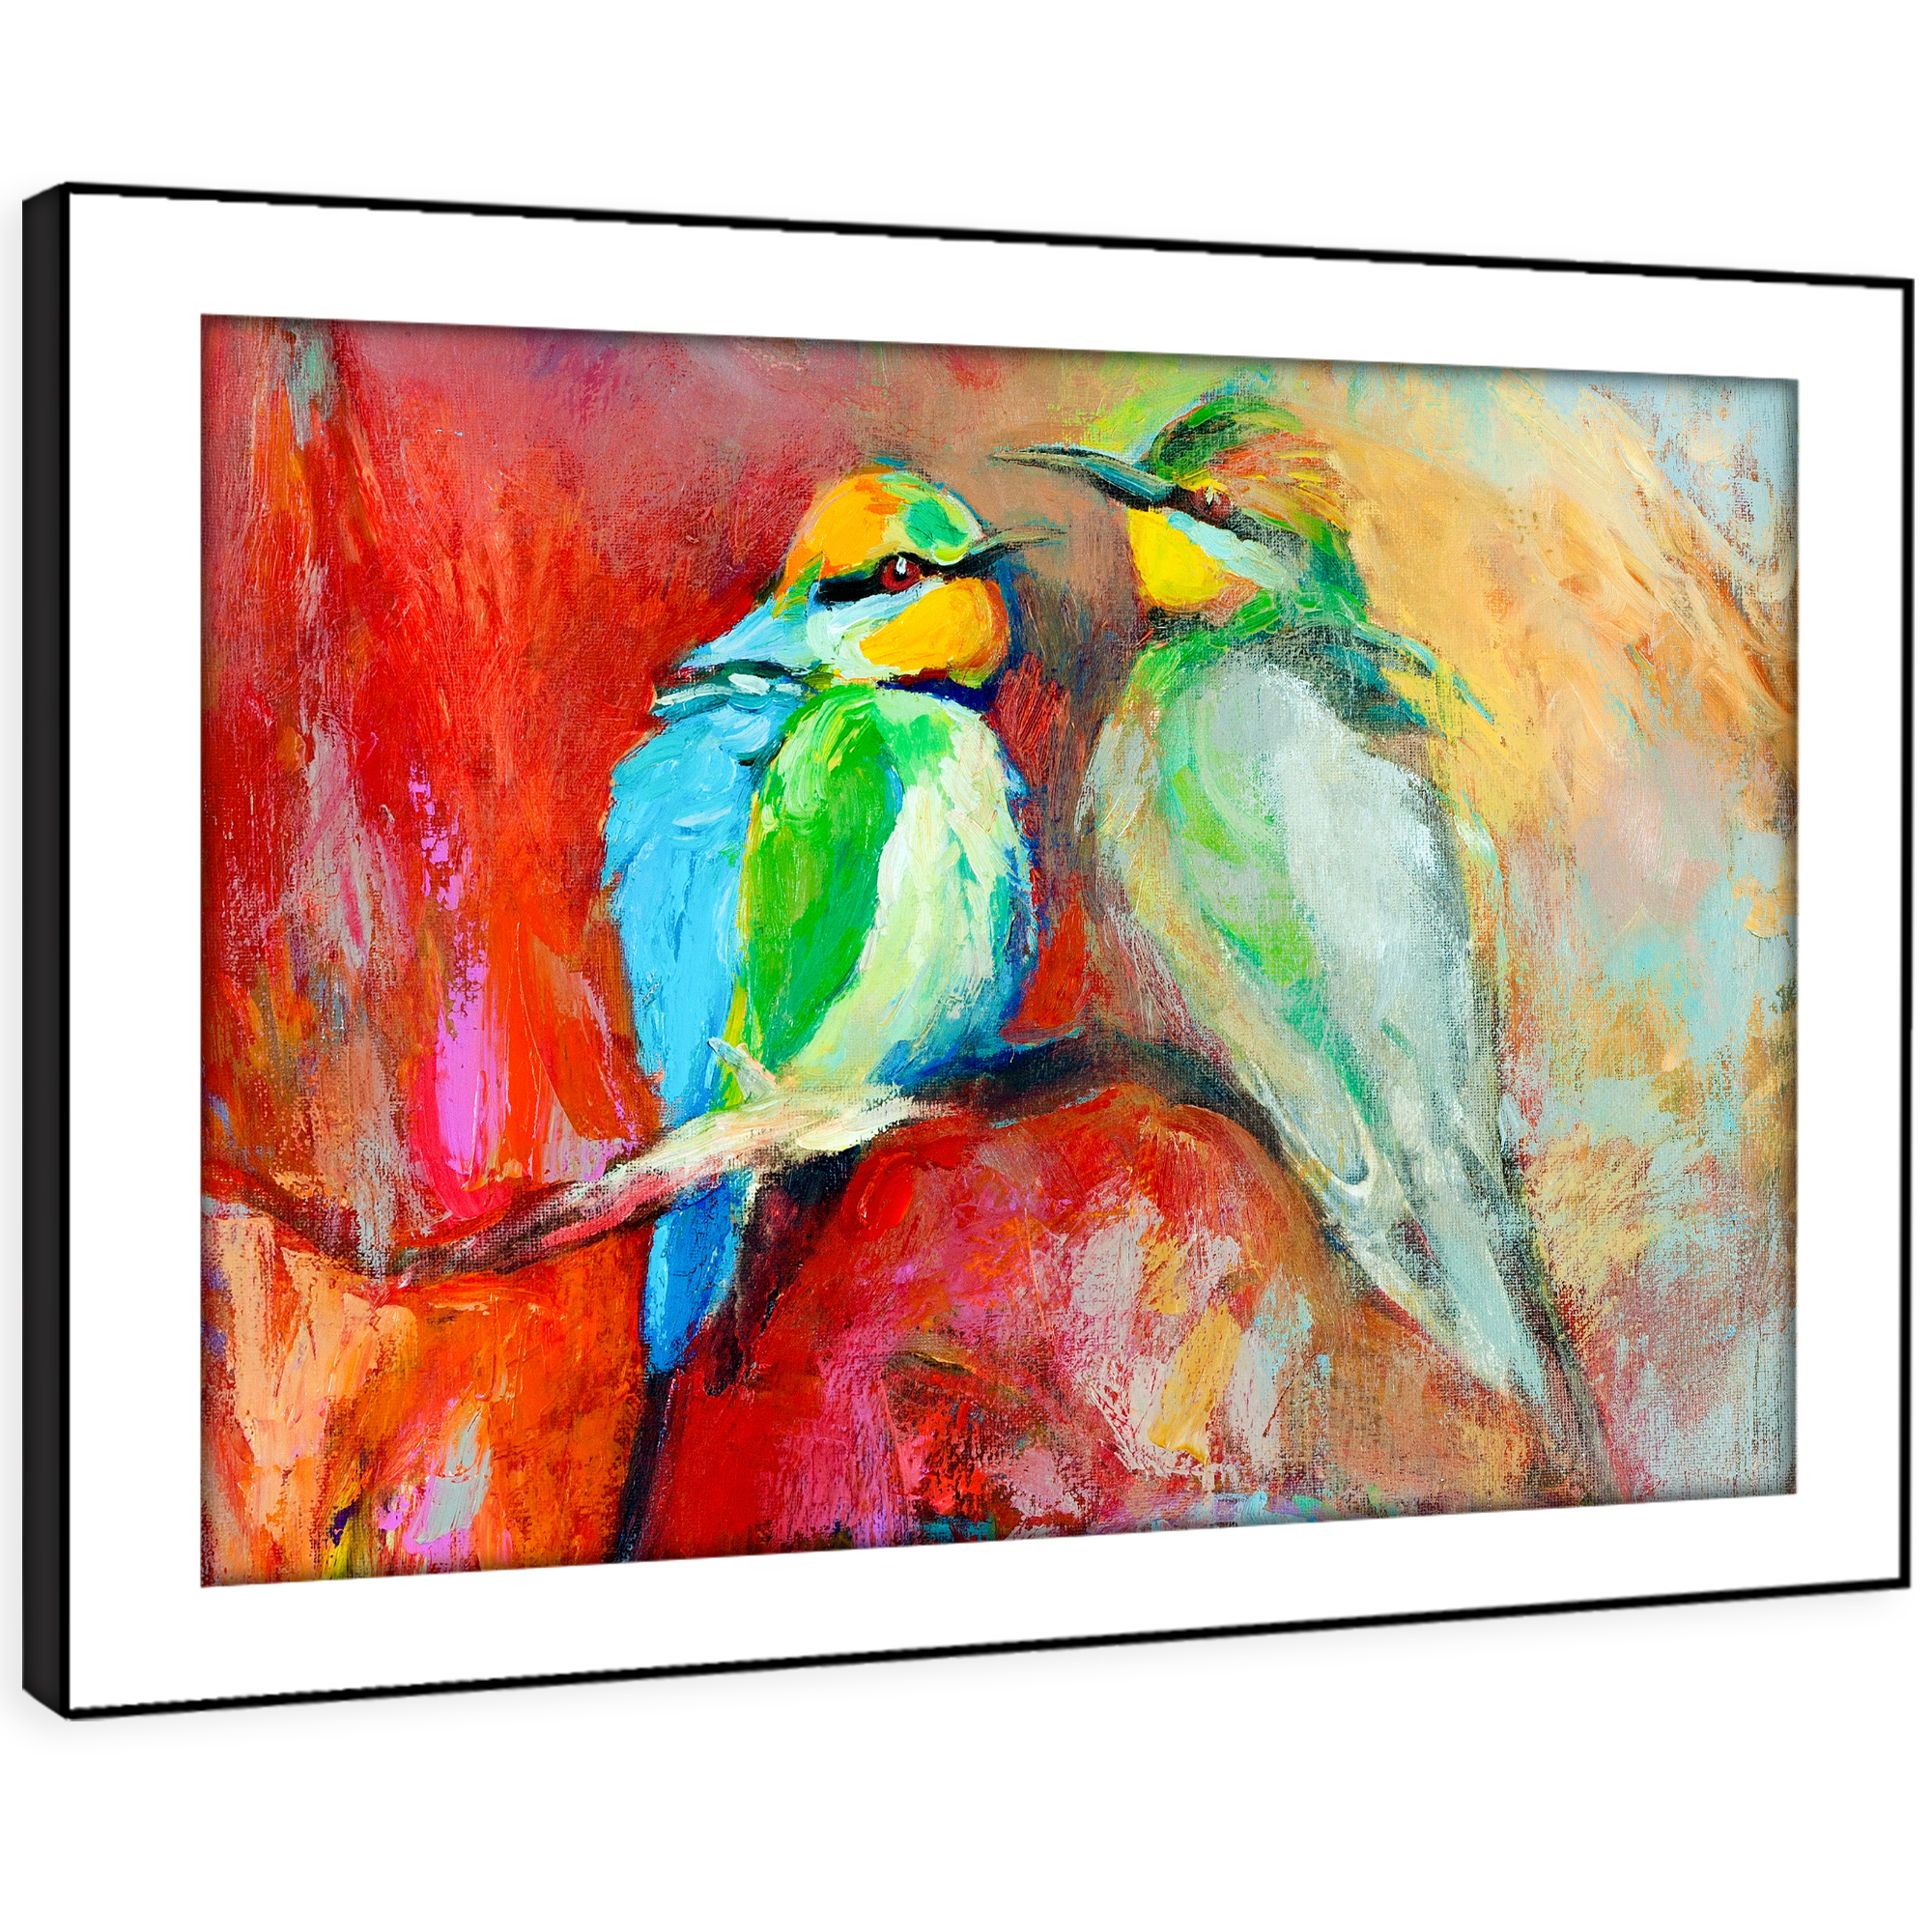 A223 Blau rot Birds Abstract Funky Animal Framed Wall Art Large Picture Prints